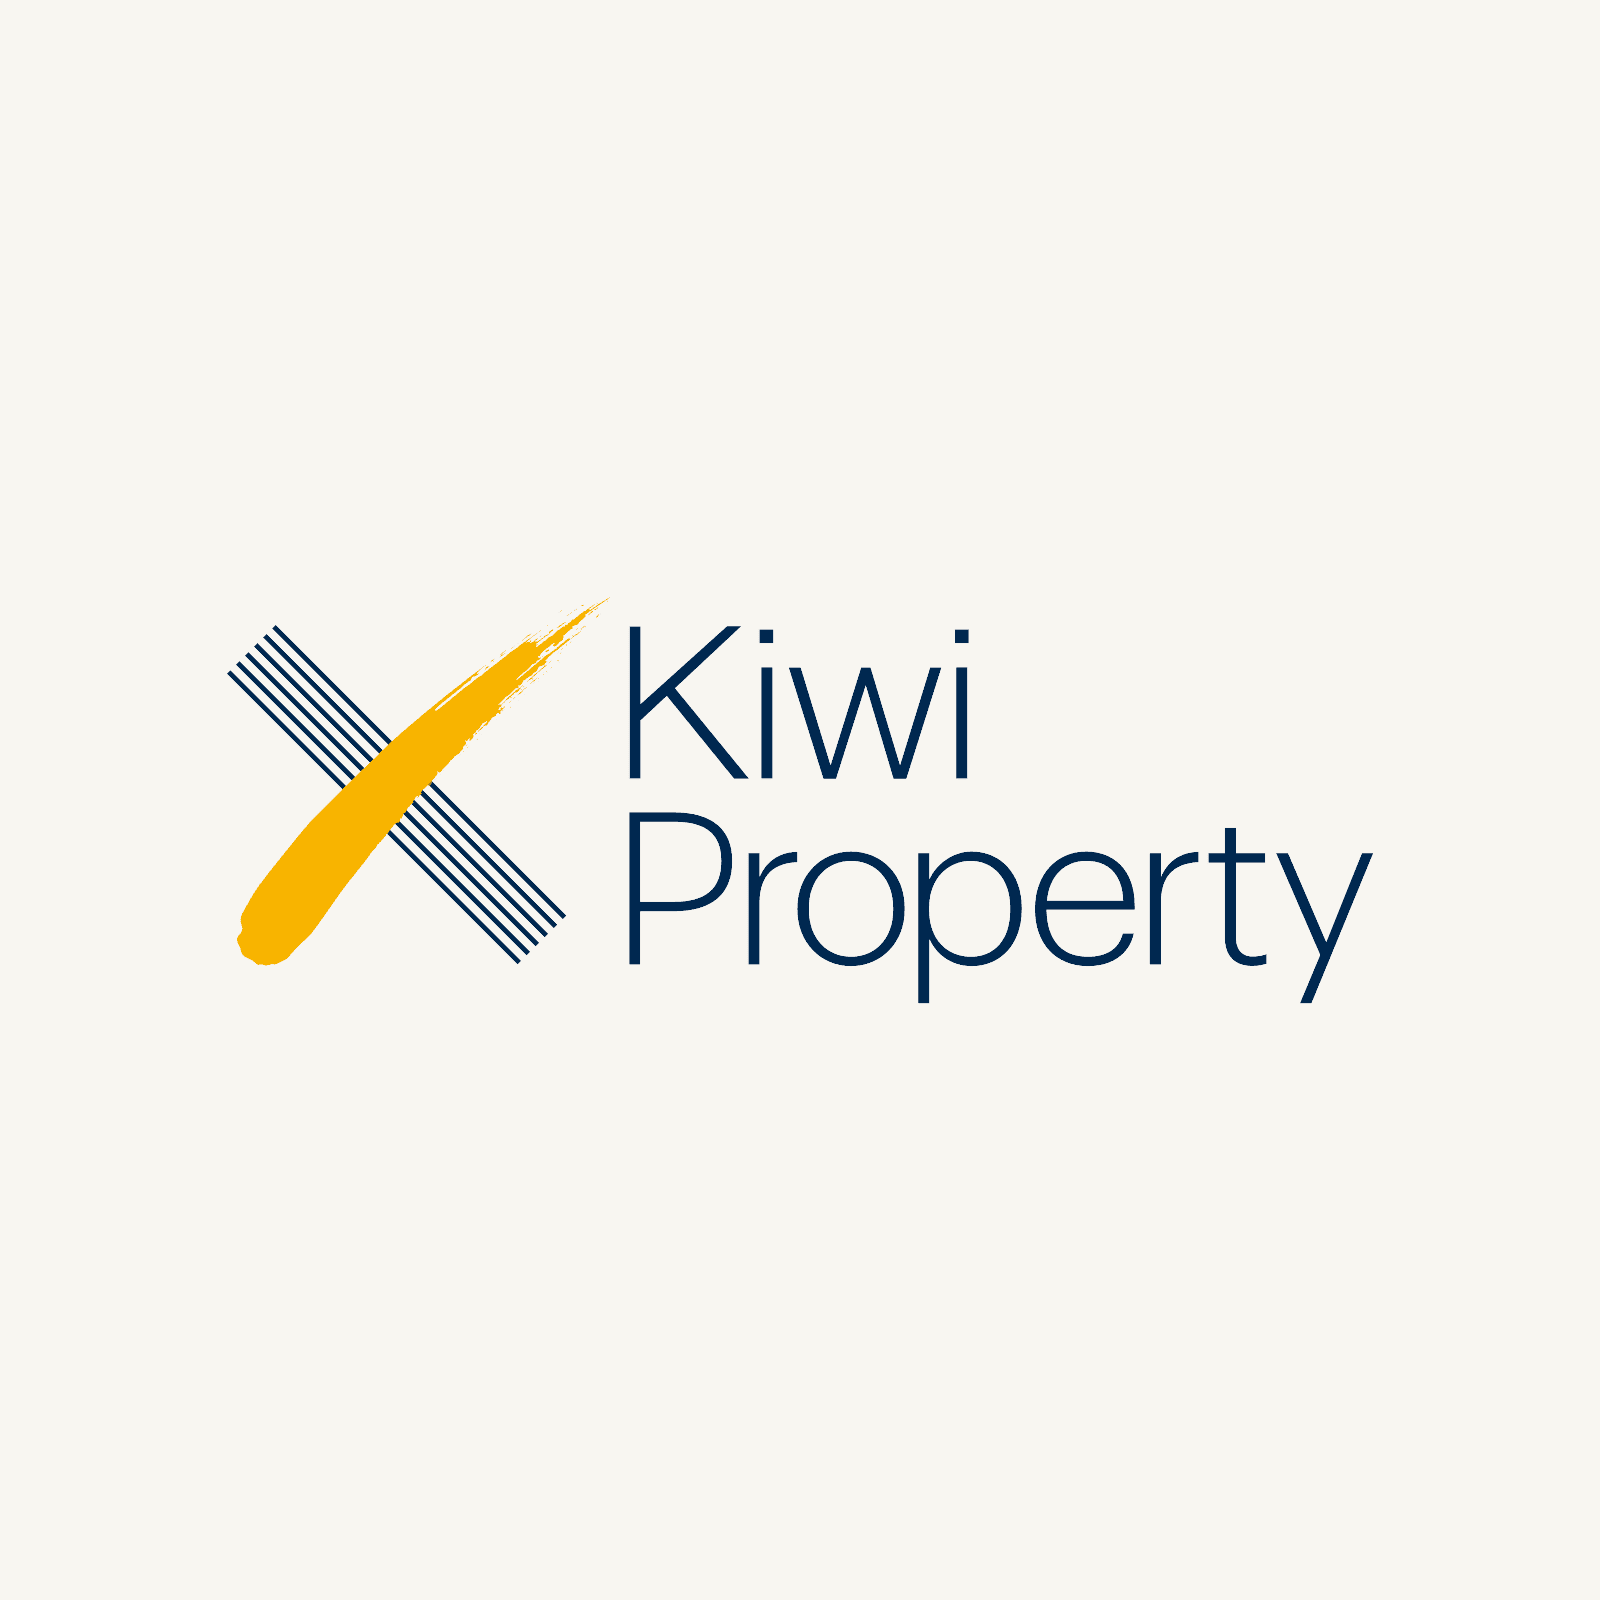 Leanne Walker appointed Group Financial Controller at Kiwi Property